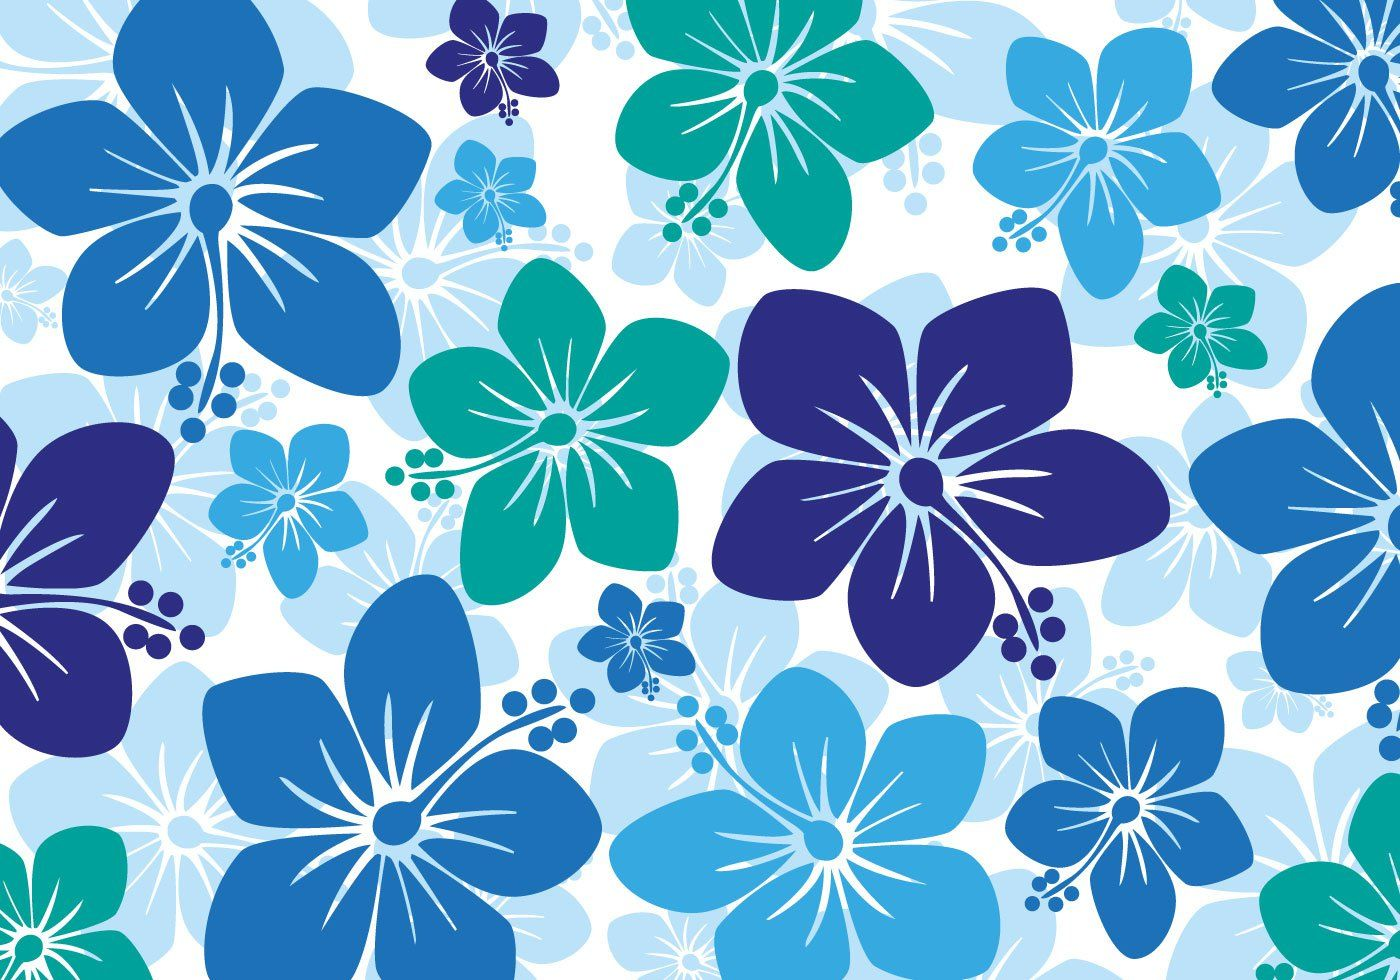 Free Hawaiian Hibiscus Background Vector | Graphic Design ...